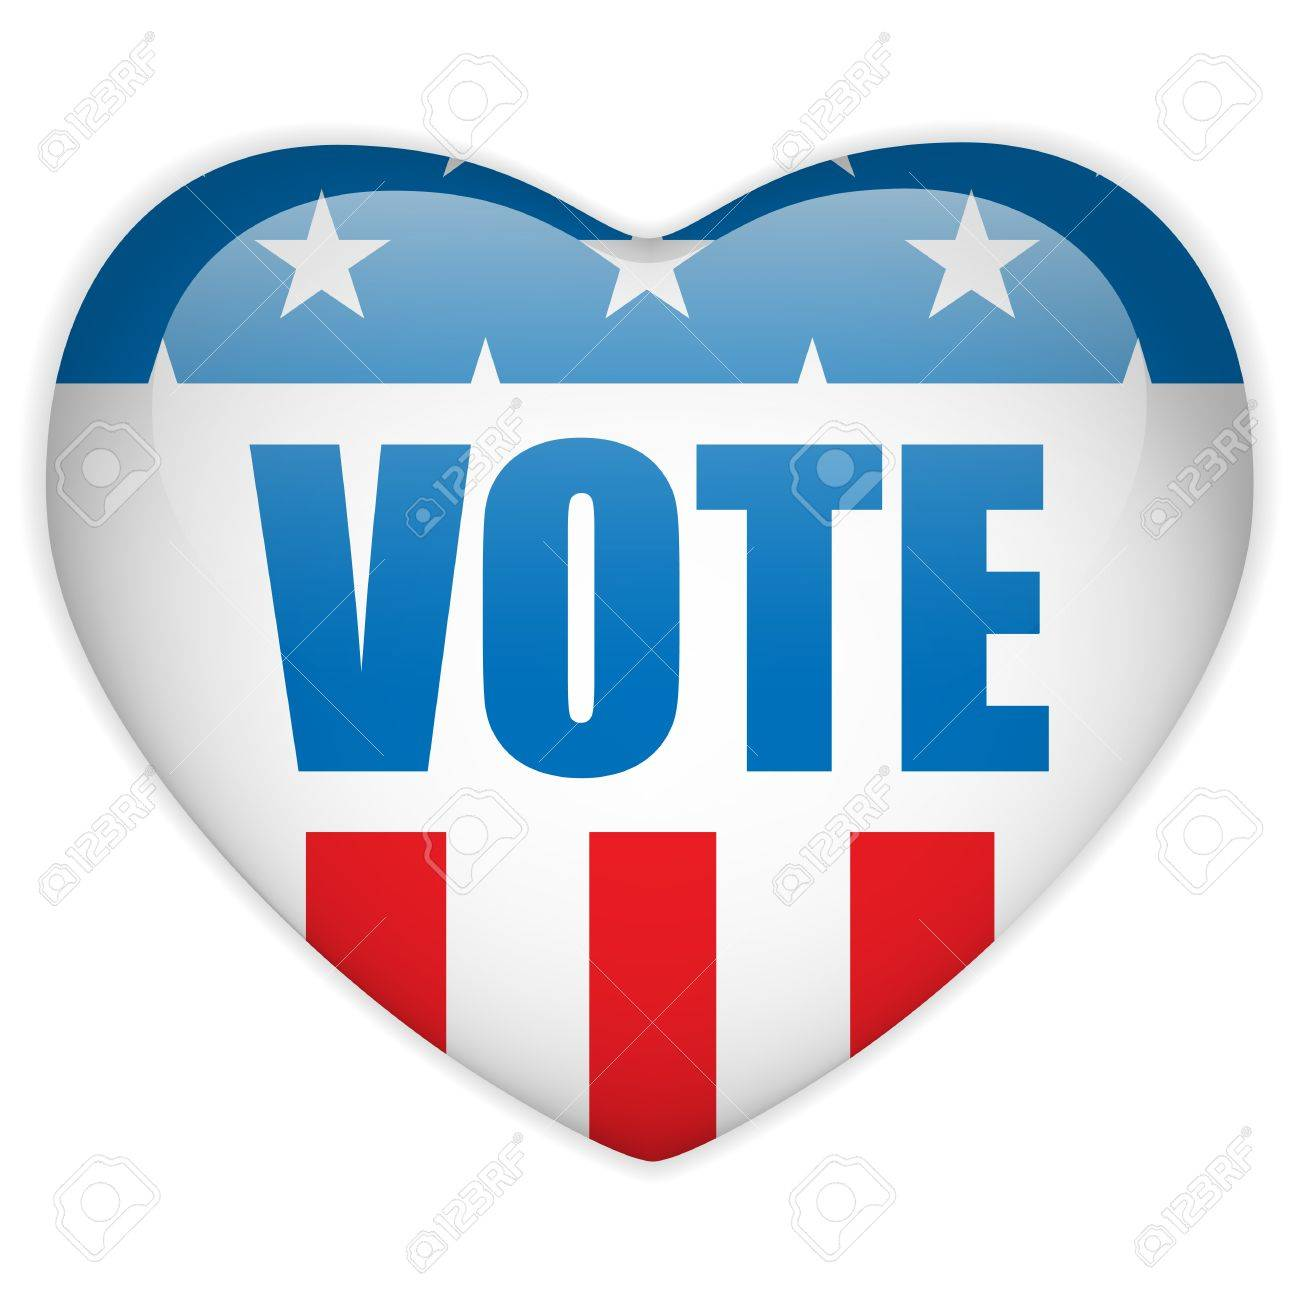 Vector - United States Election Vote Heart Button. Stock Vector - 15064557